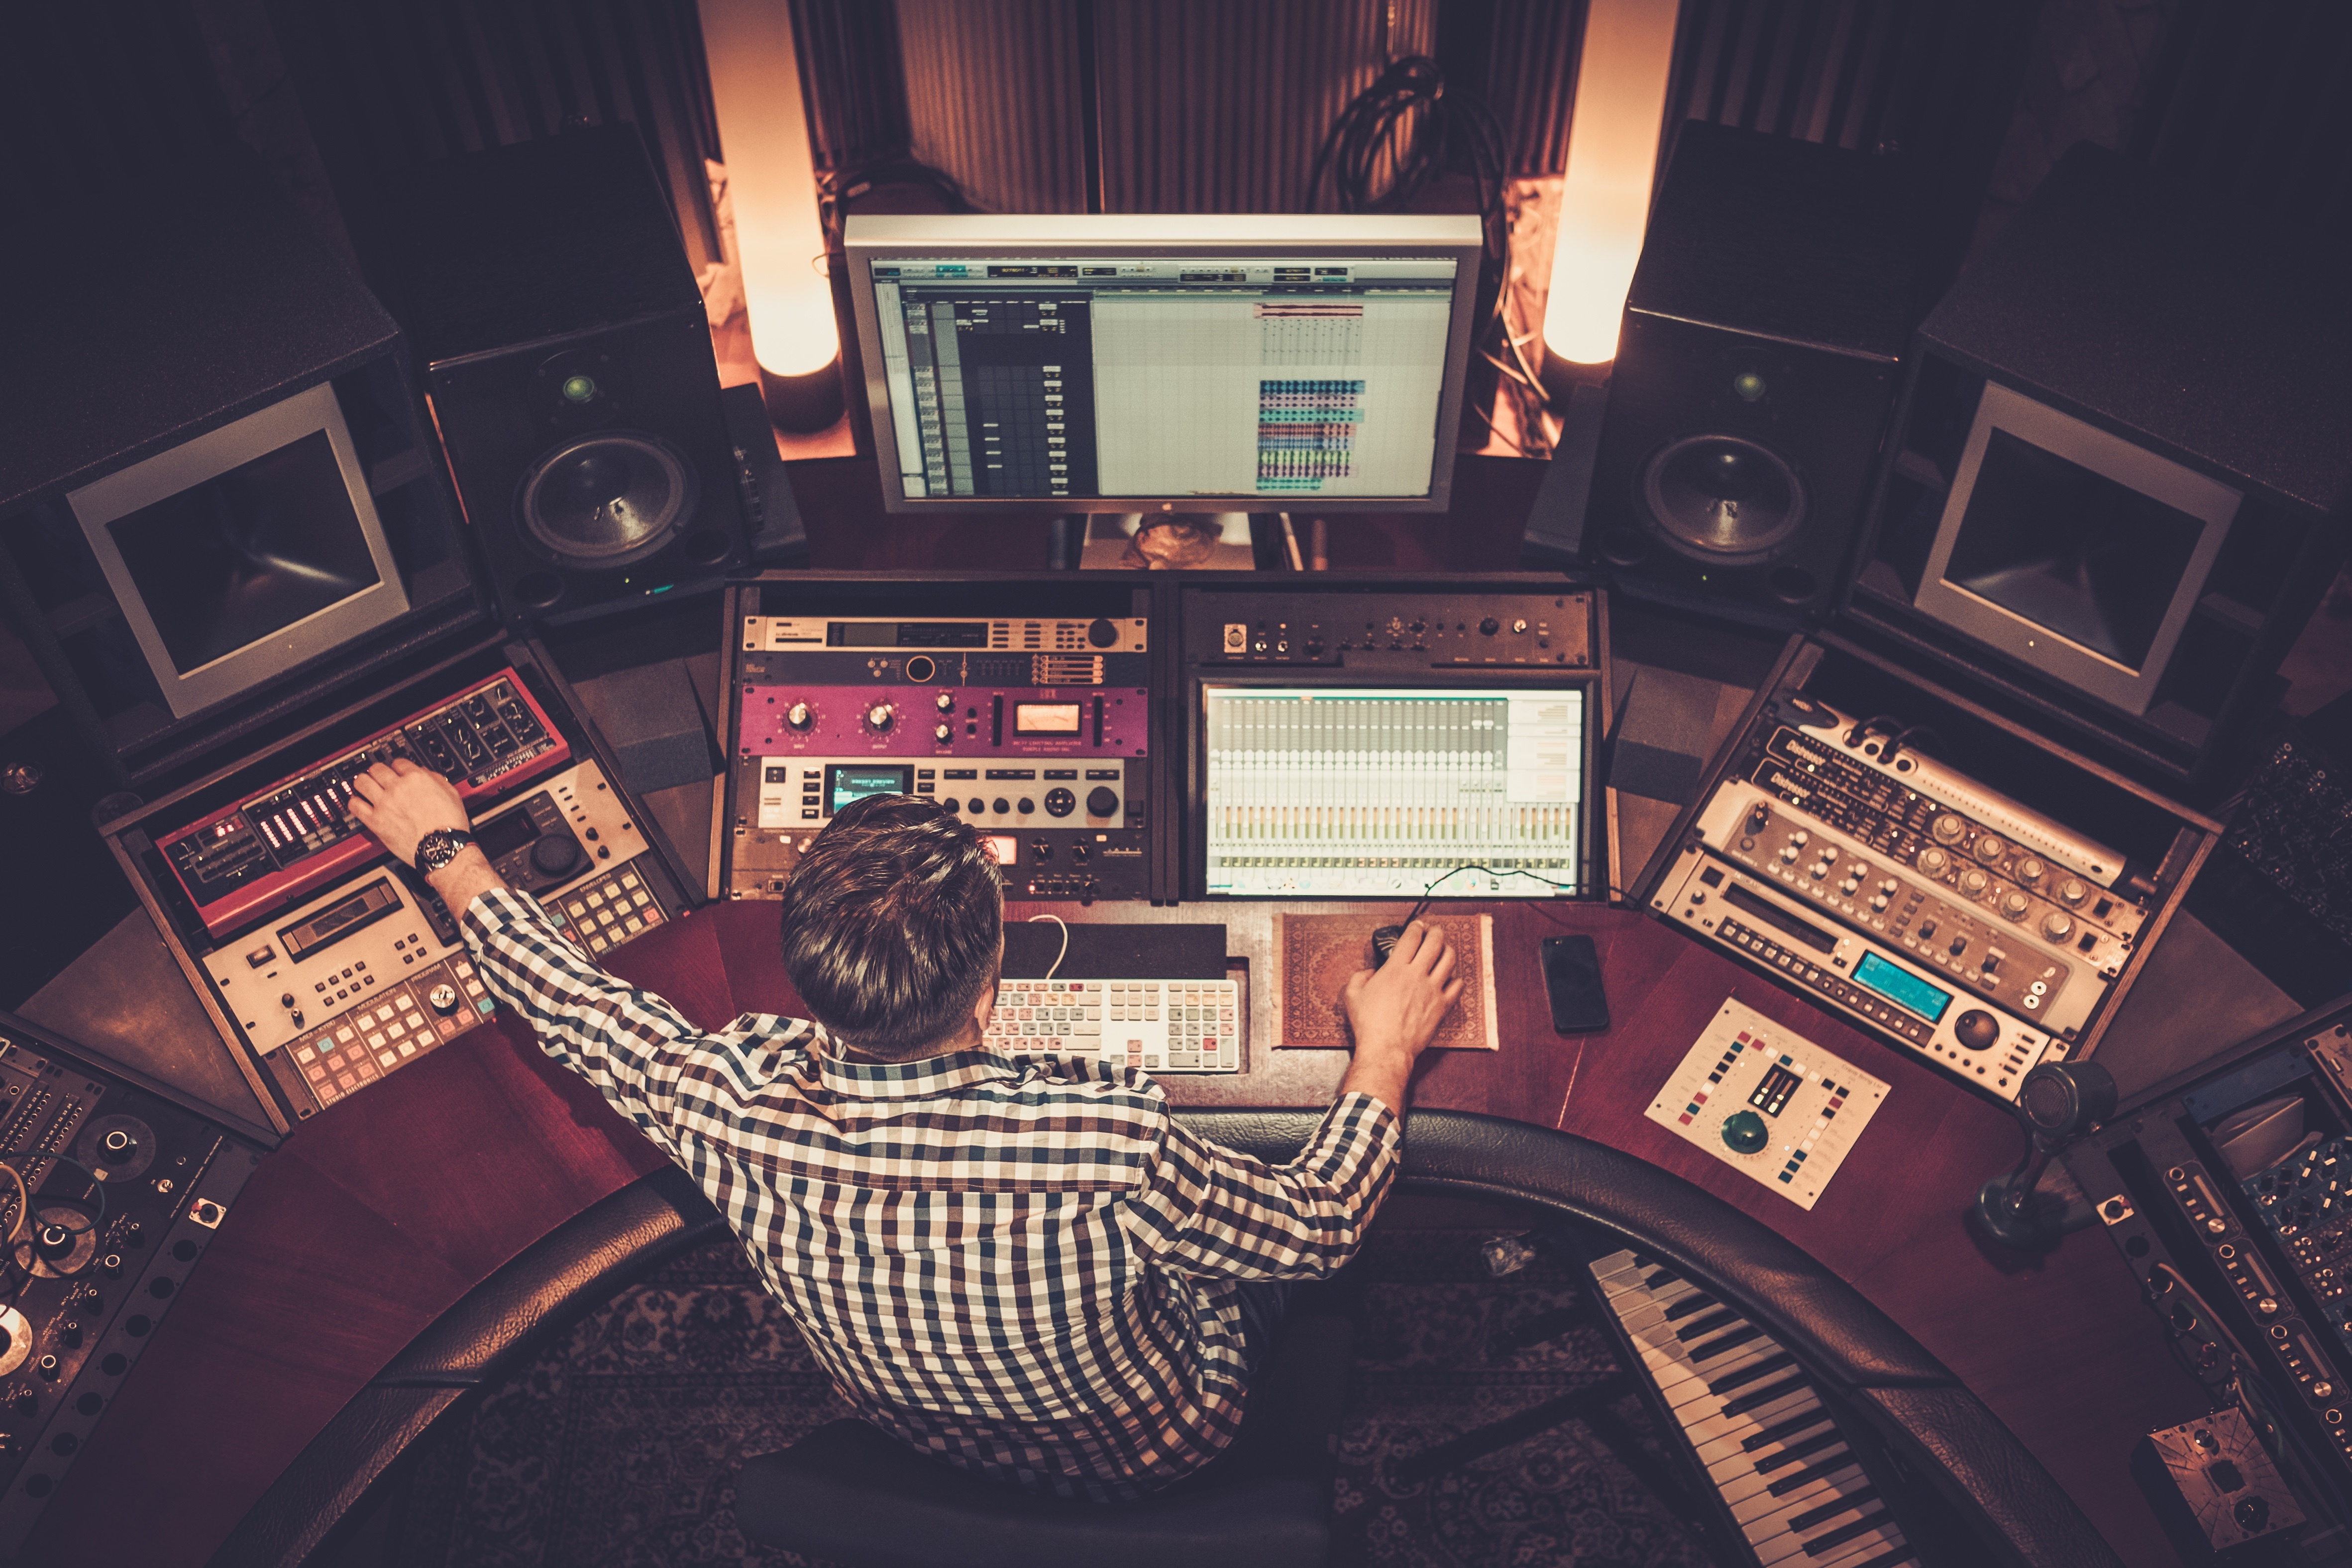 6 Of The Best Audio Interfaces For Beginners (2020)